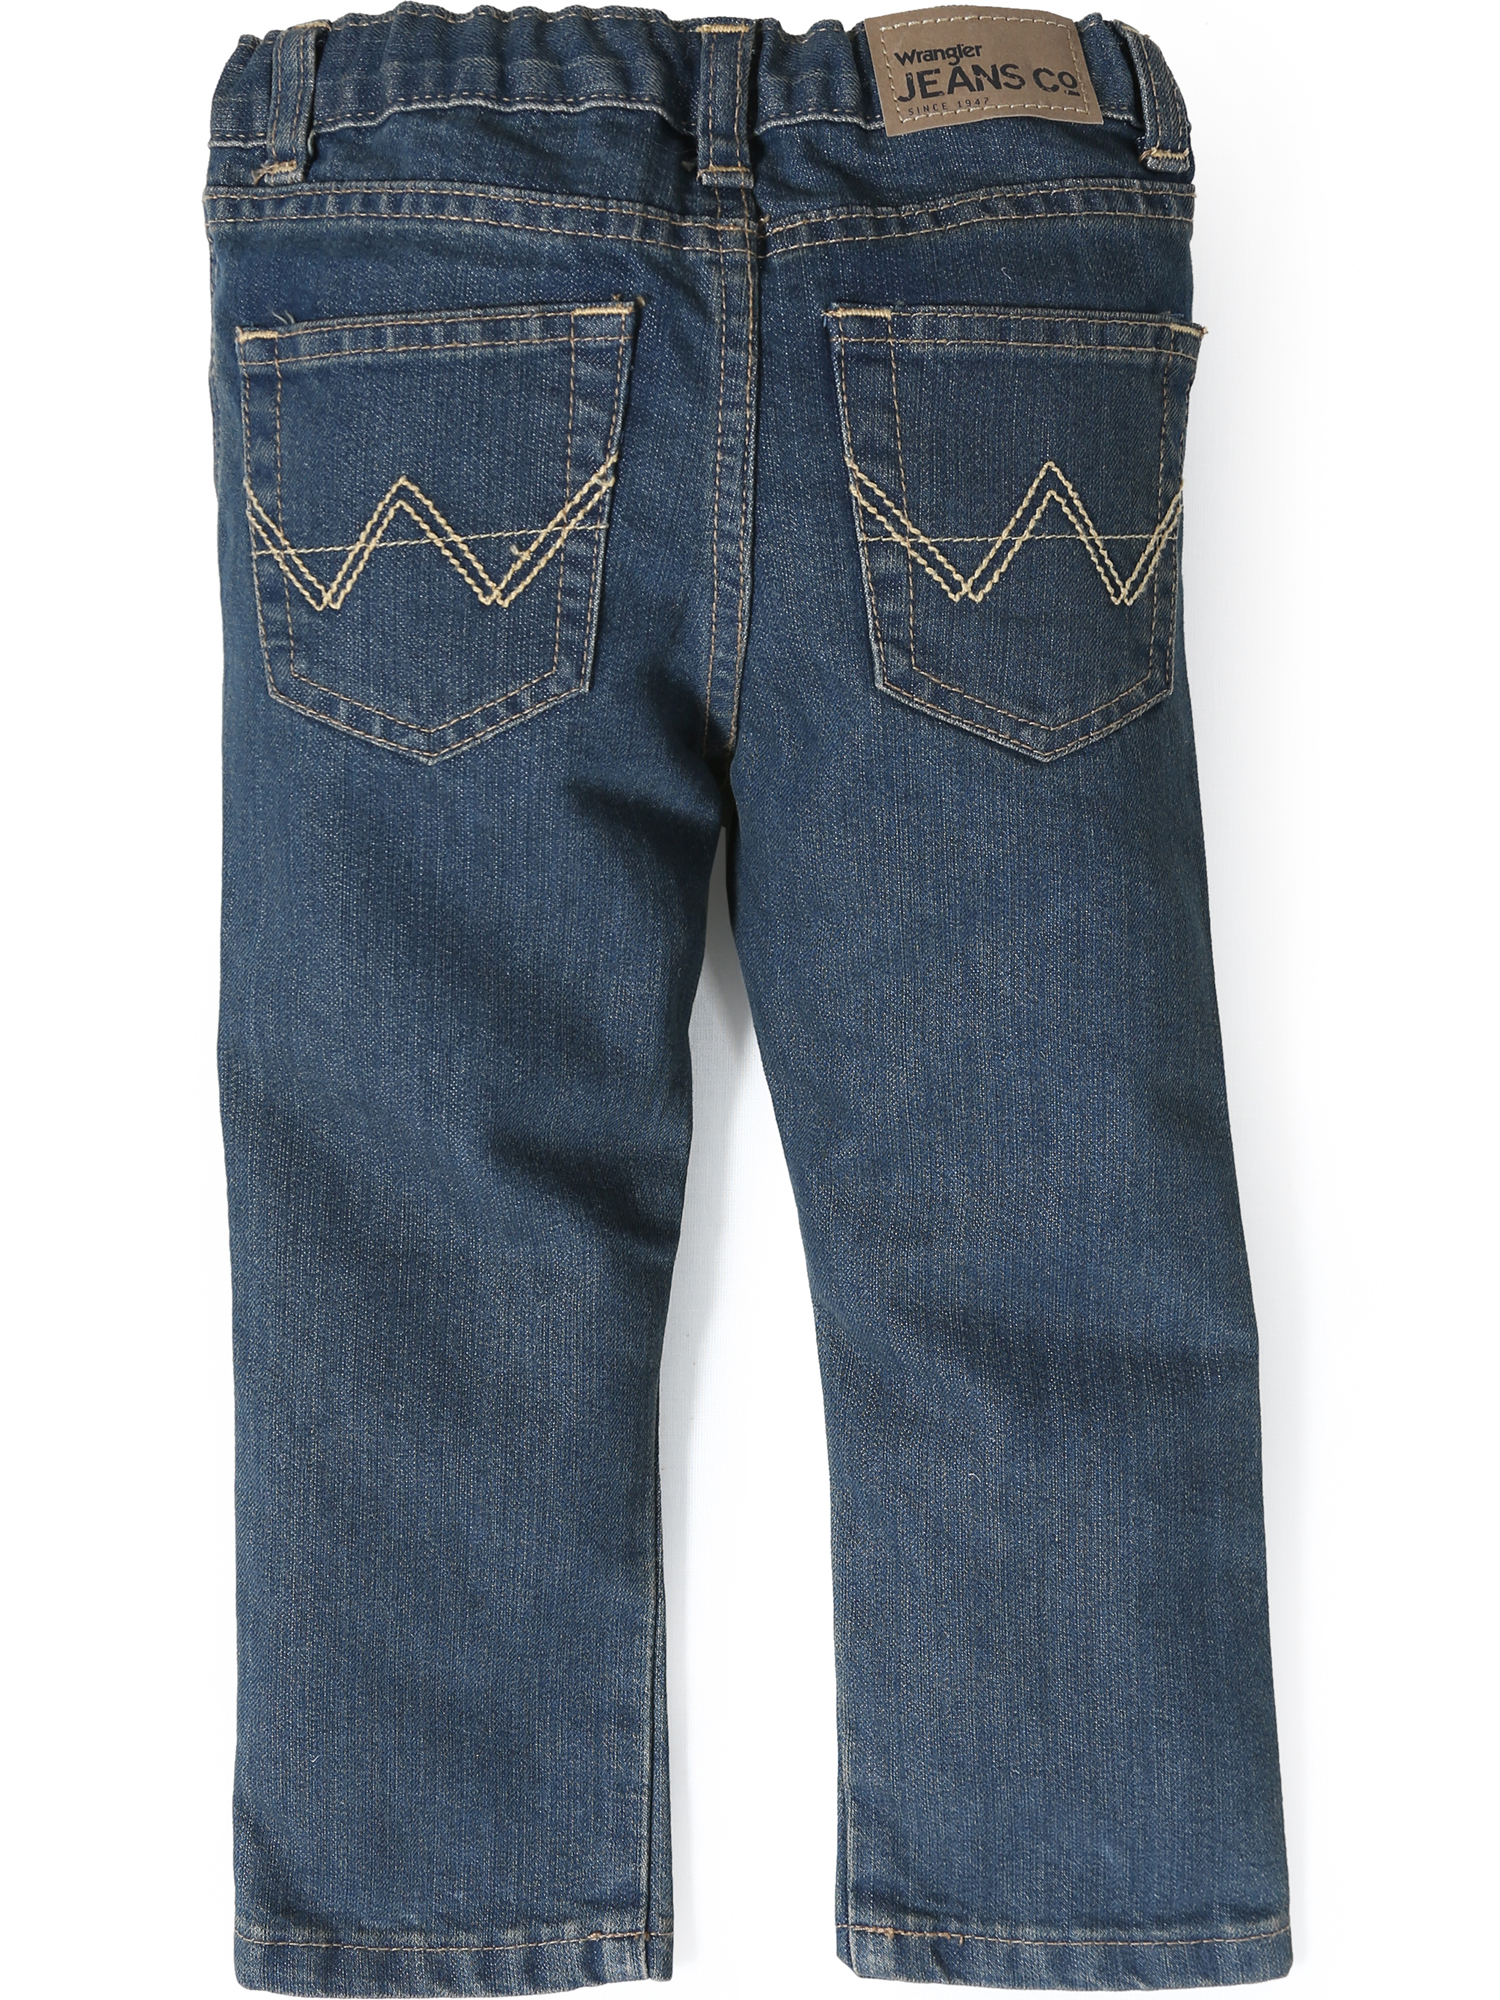 e5bd321e Wrangler Toddler Boy Jeans Collection - Walmart.com